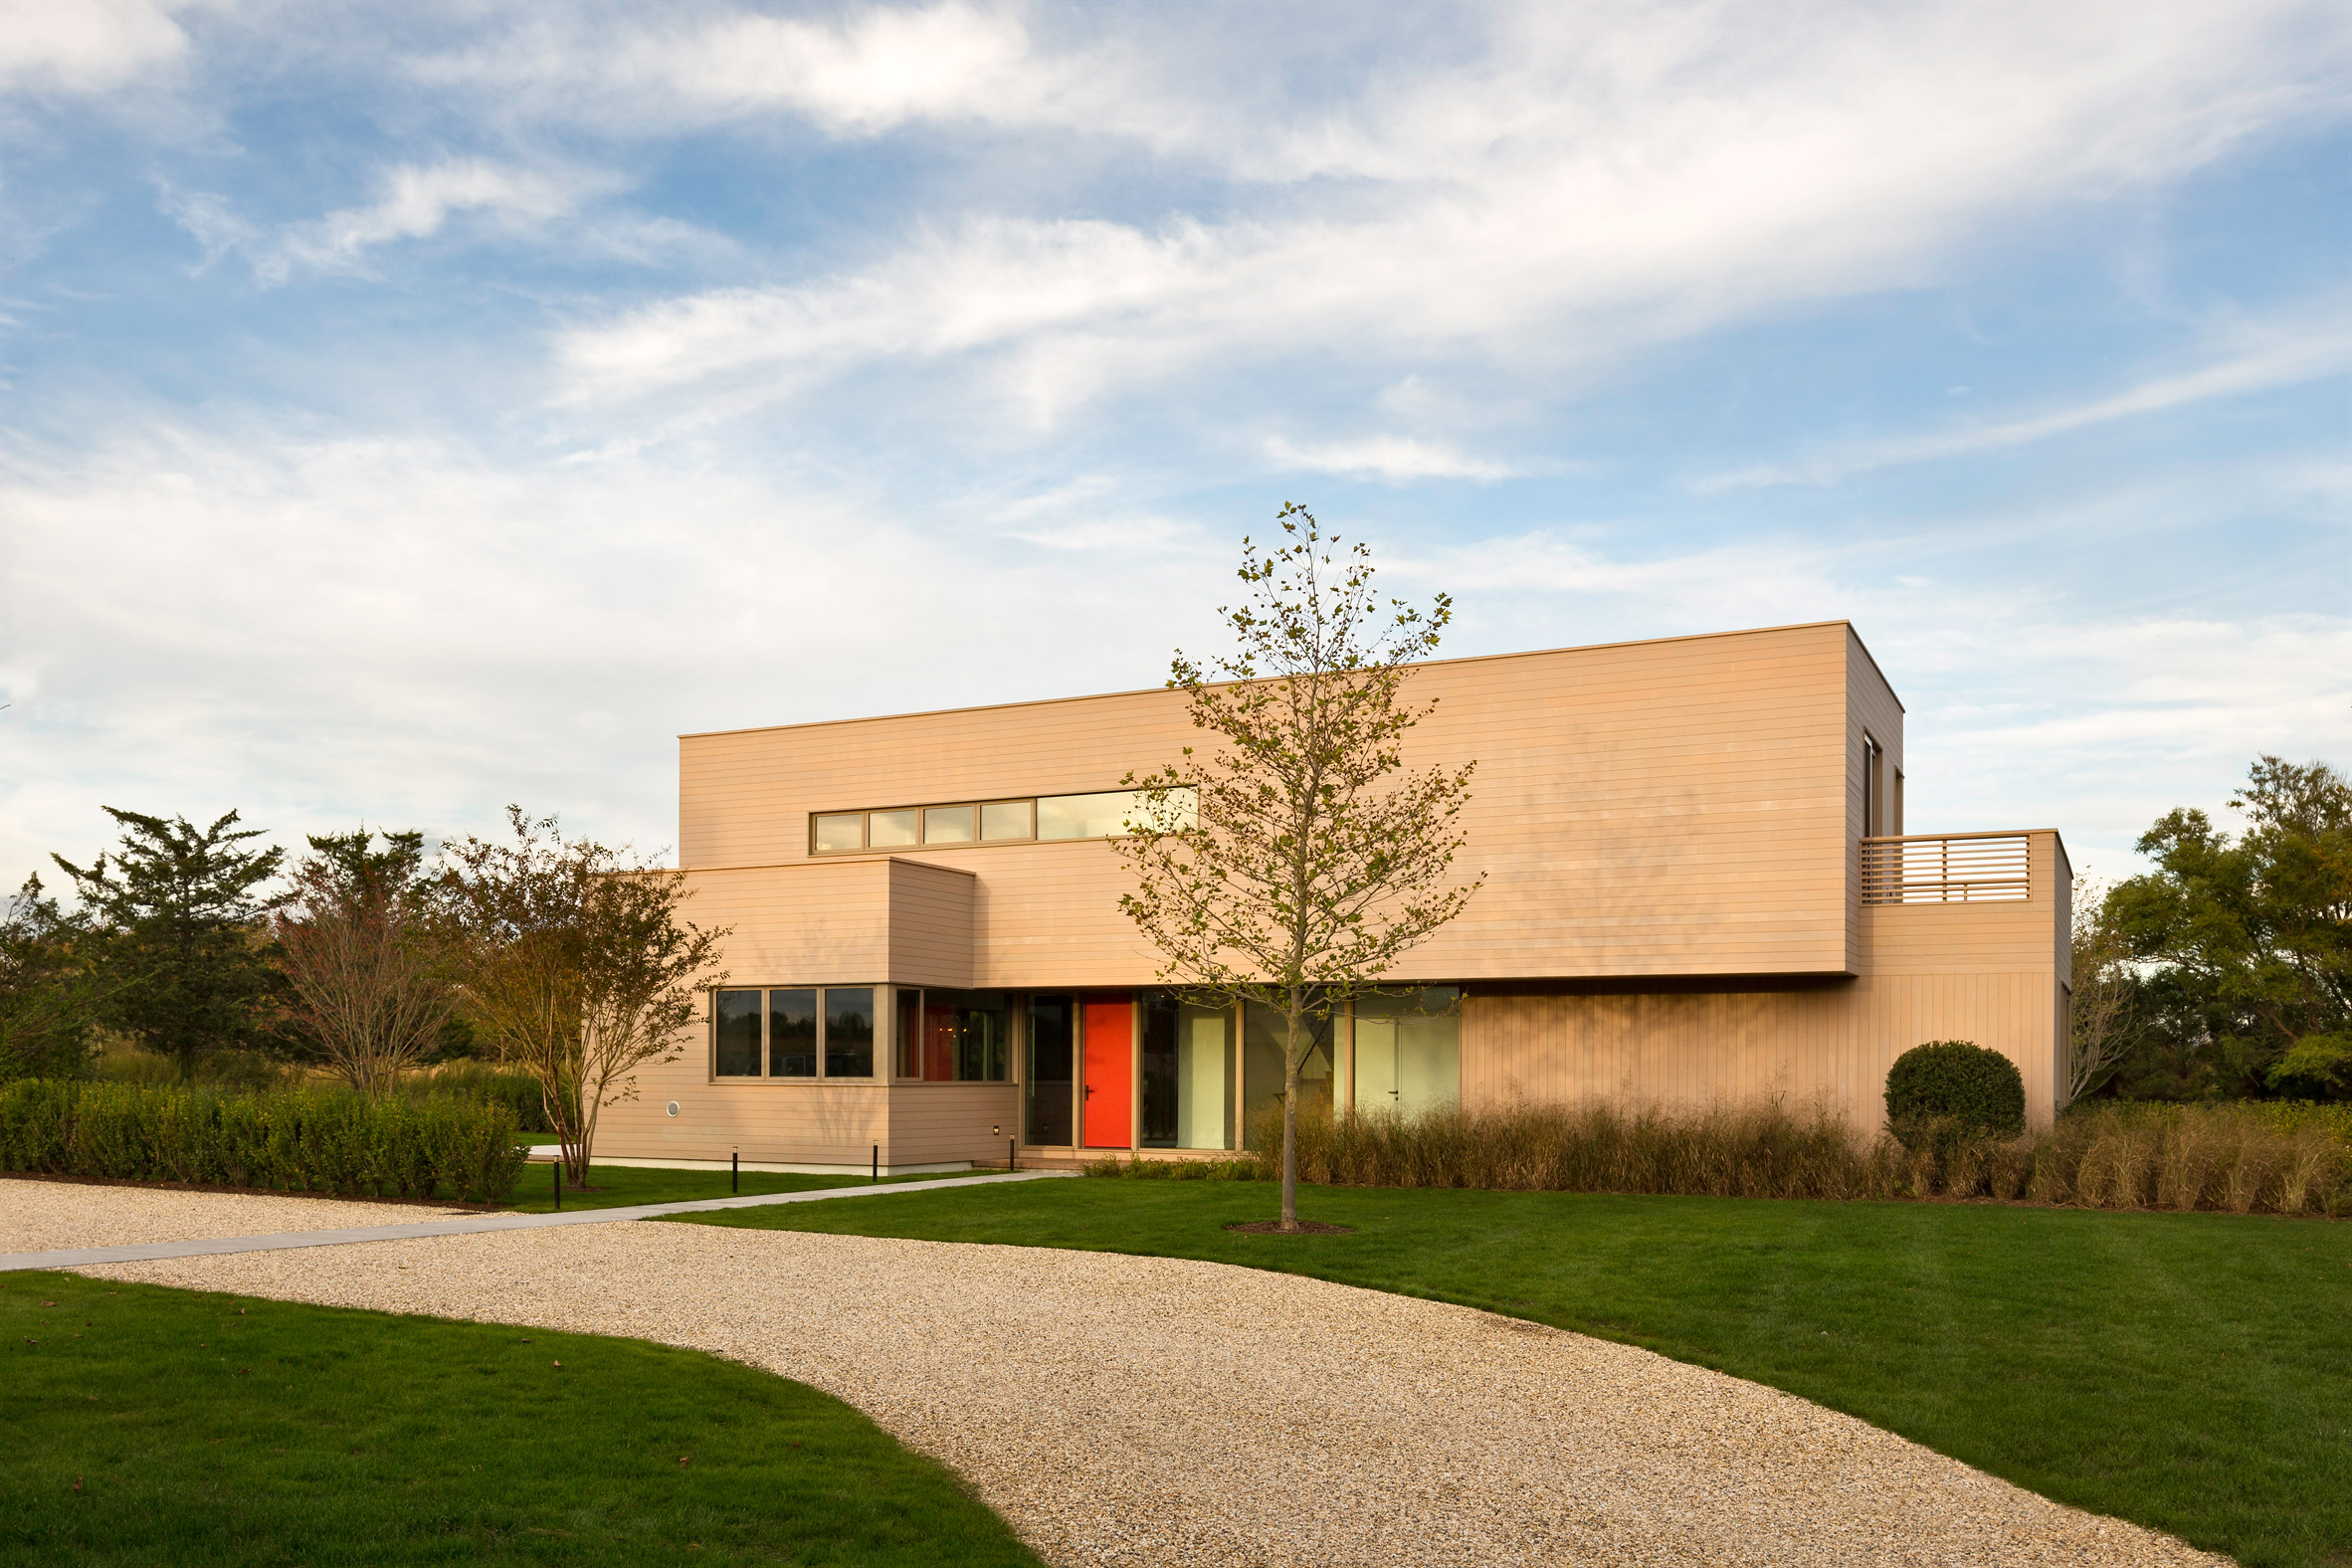 Hamptons house by Deborah Berke Partners contains two workout areas